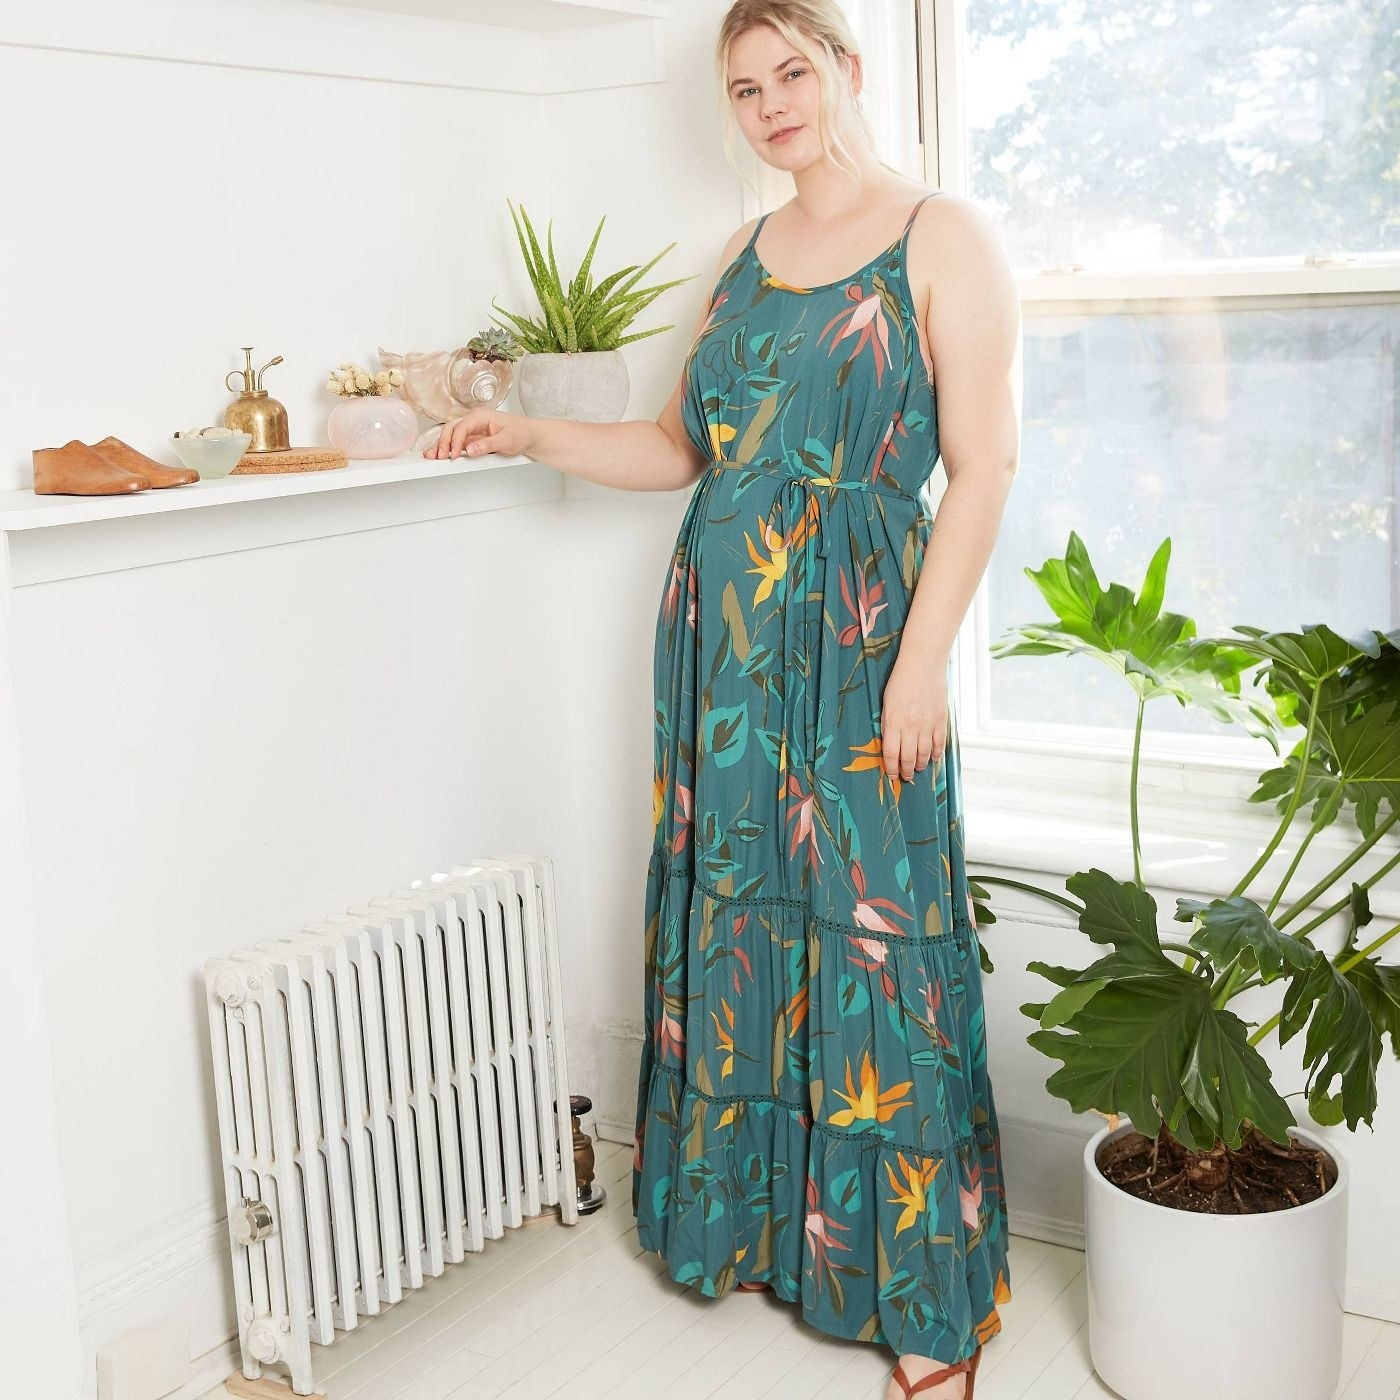 A model in a tiered green strapped maxi dress with floral patterns